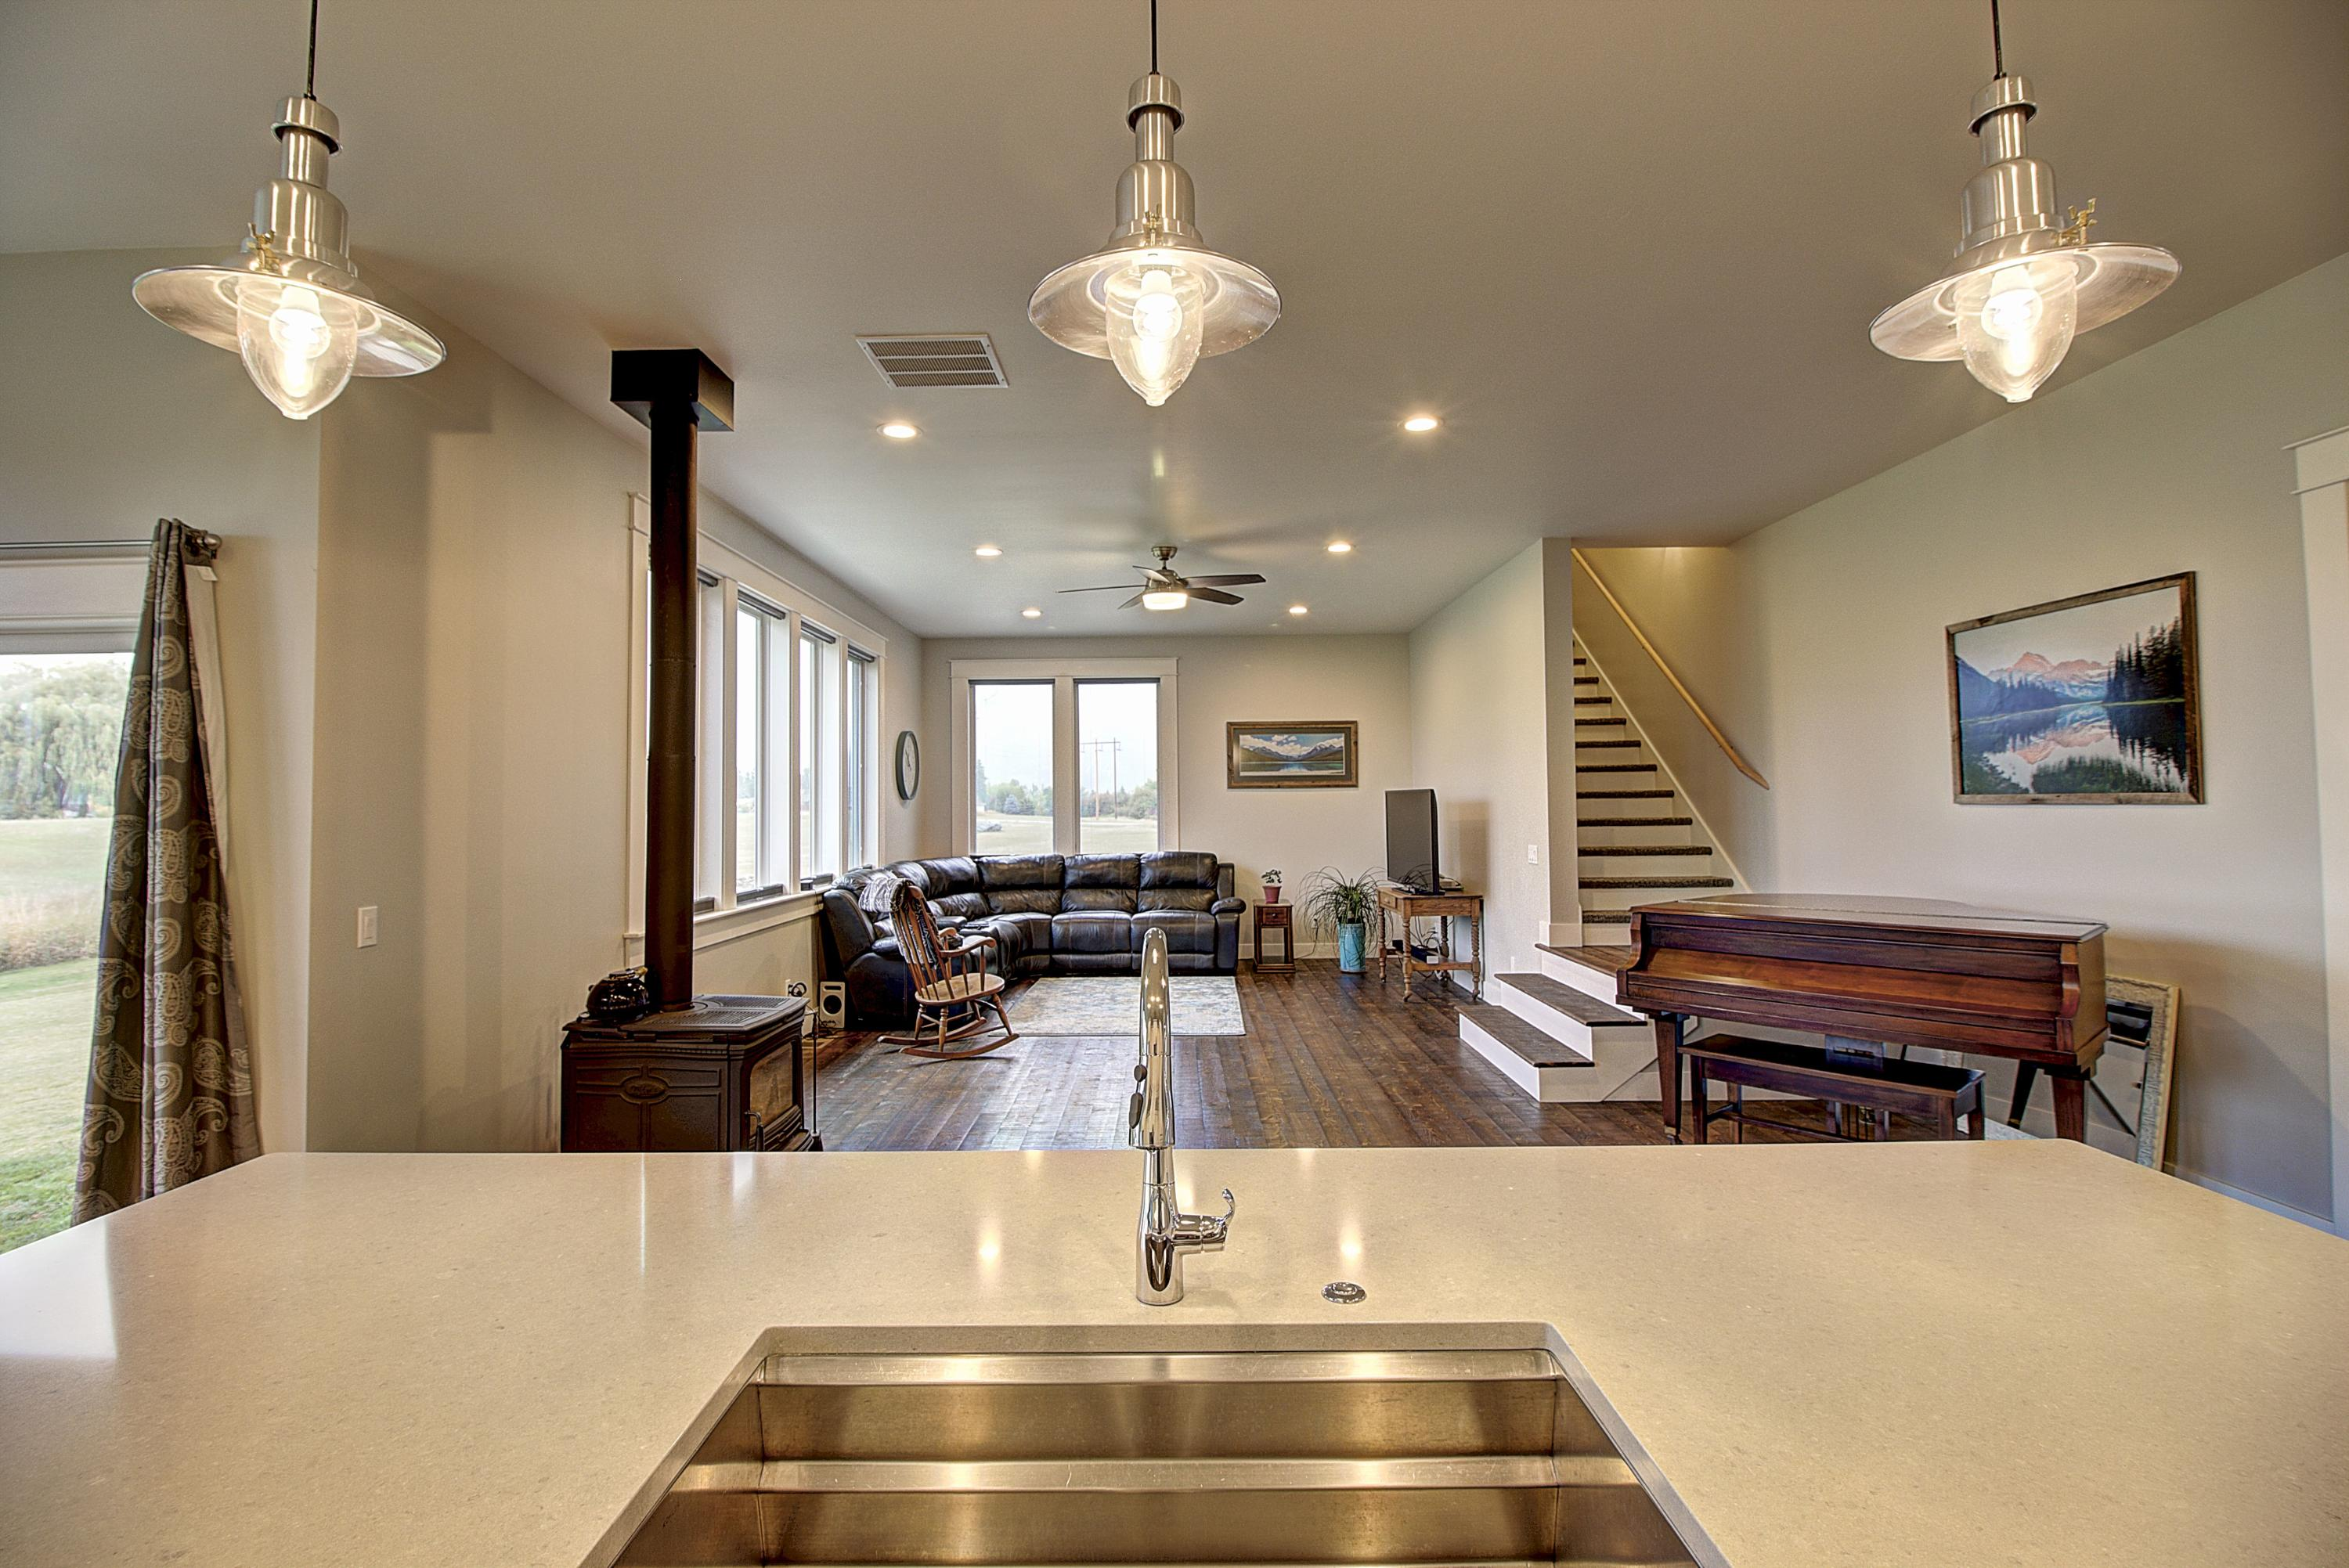 Kitchen to Living Room View